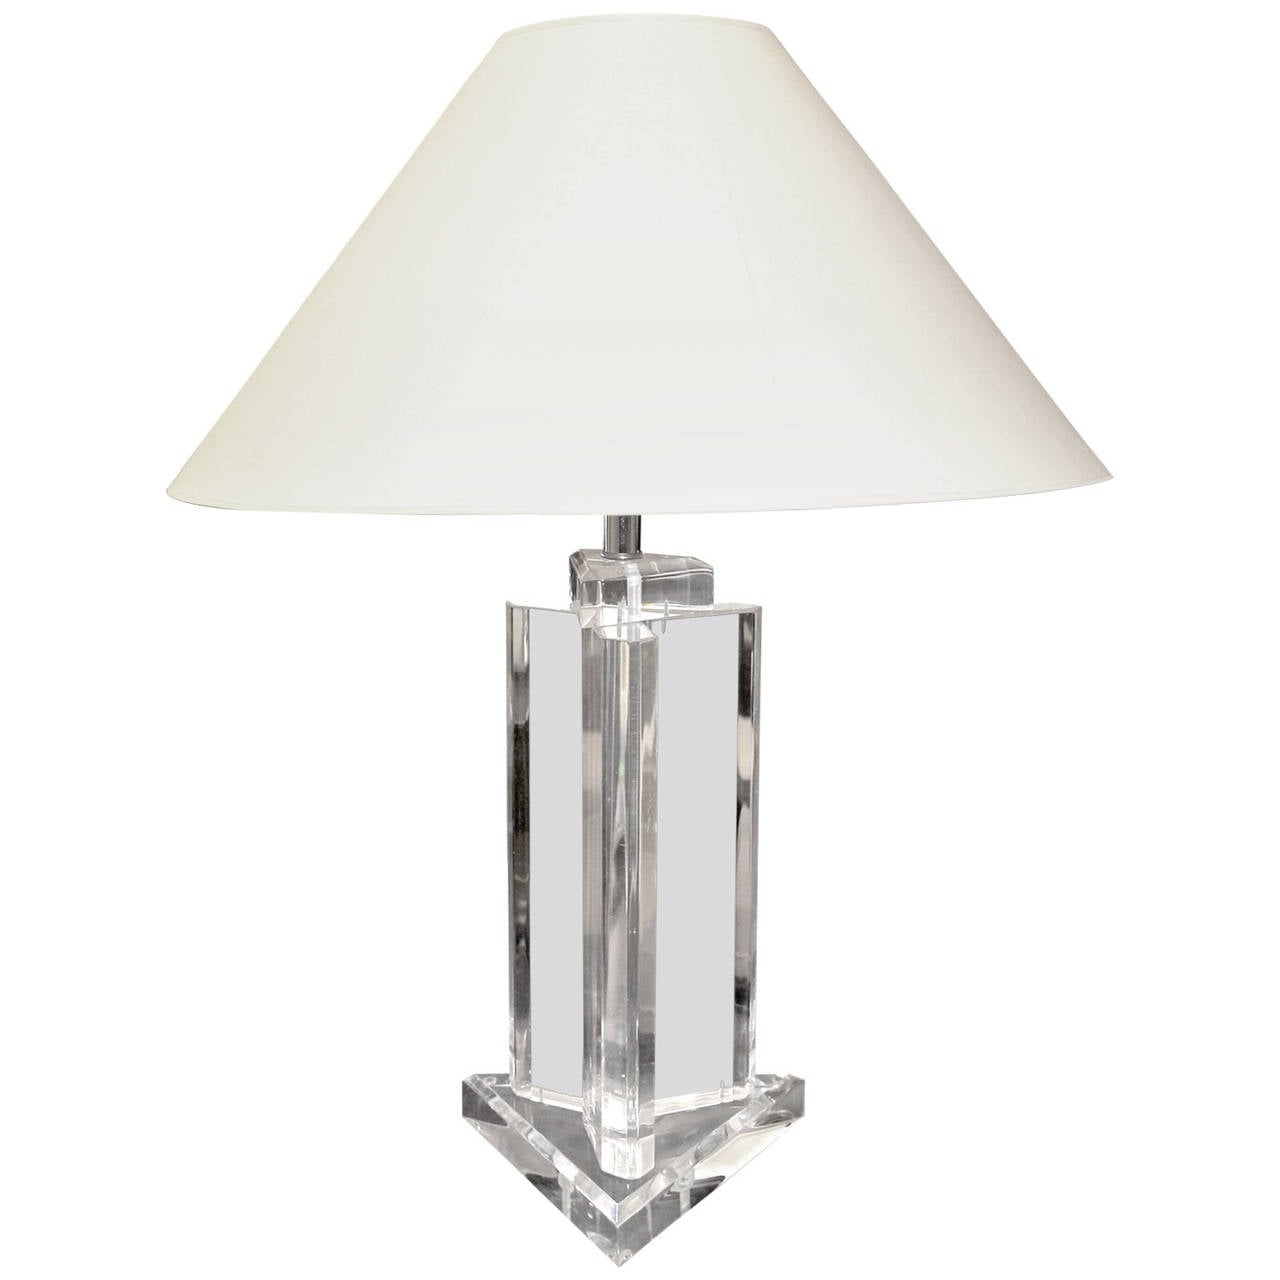 Late 20th Century Lucite Table Lamp